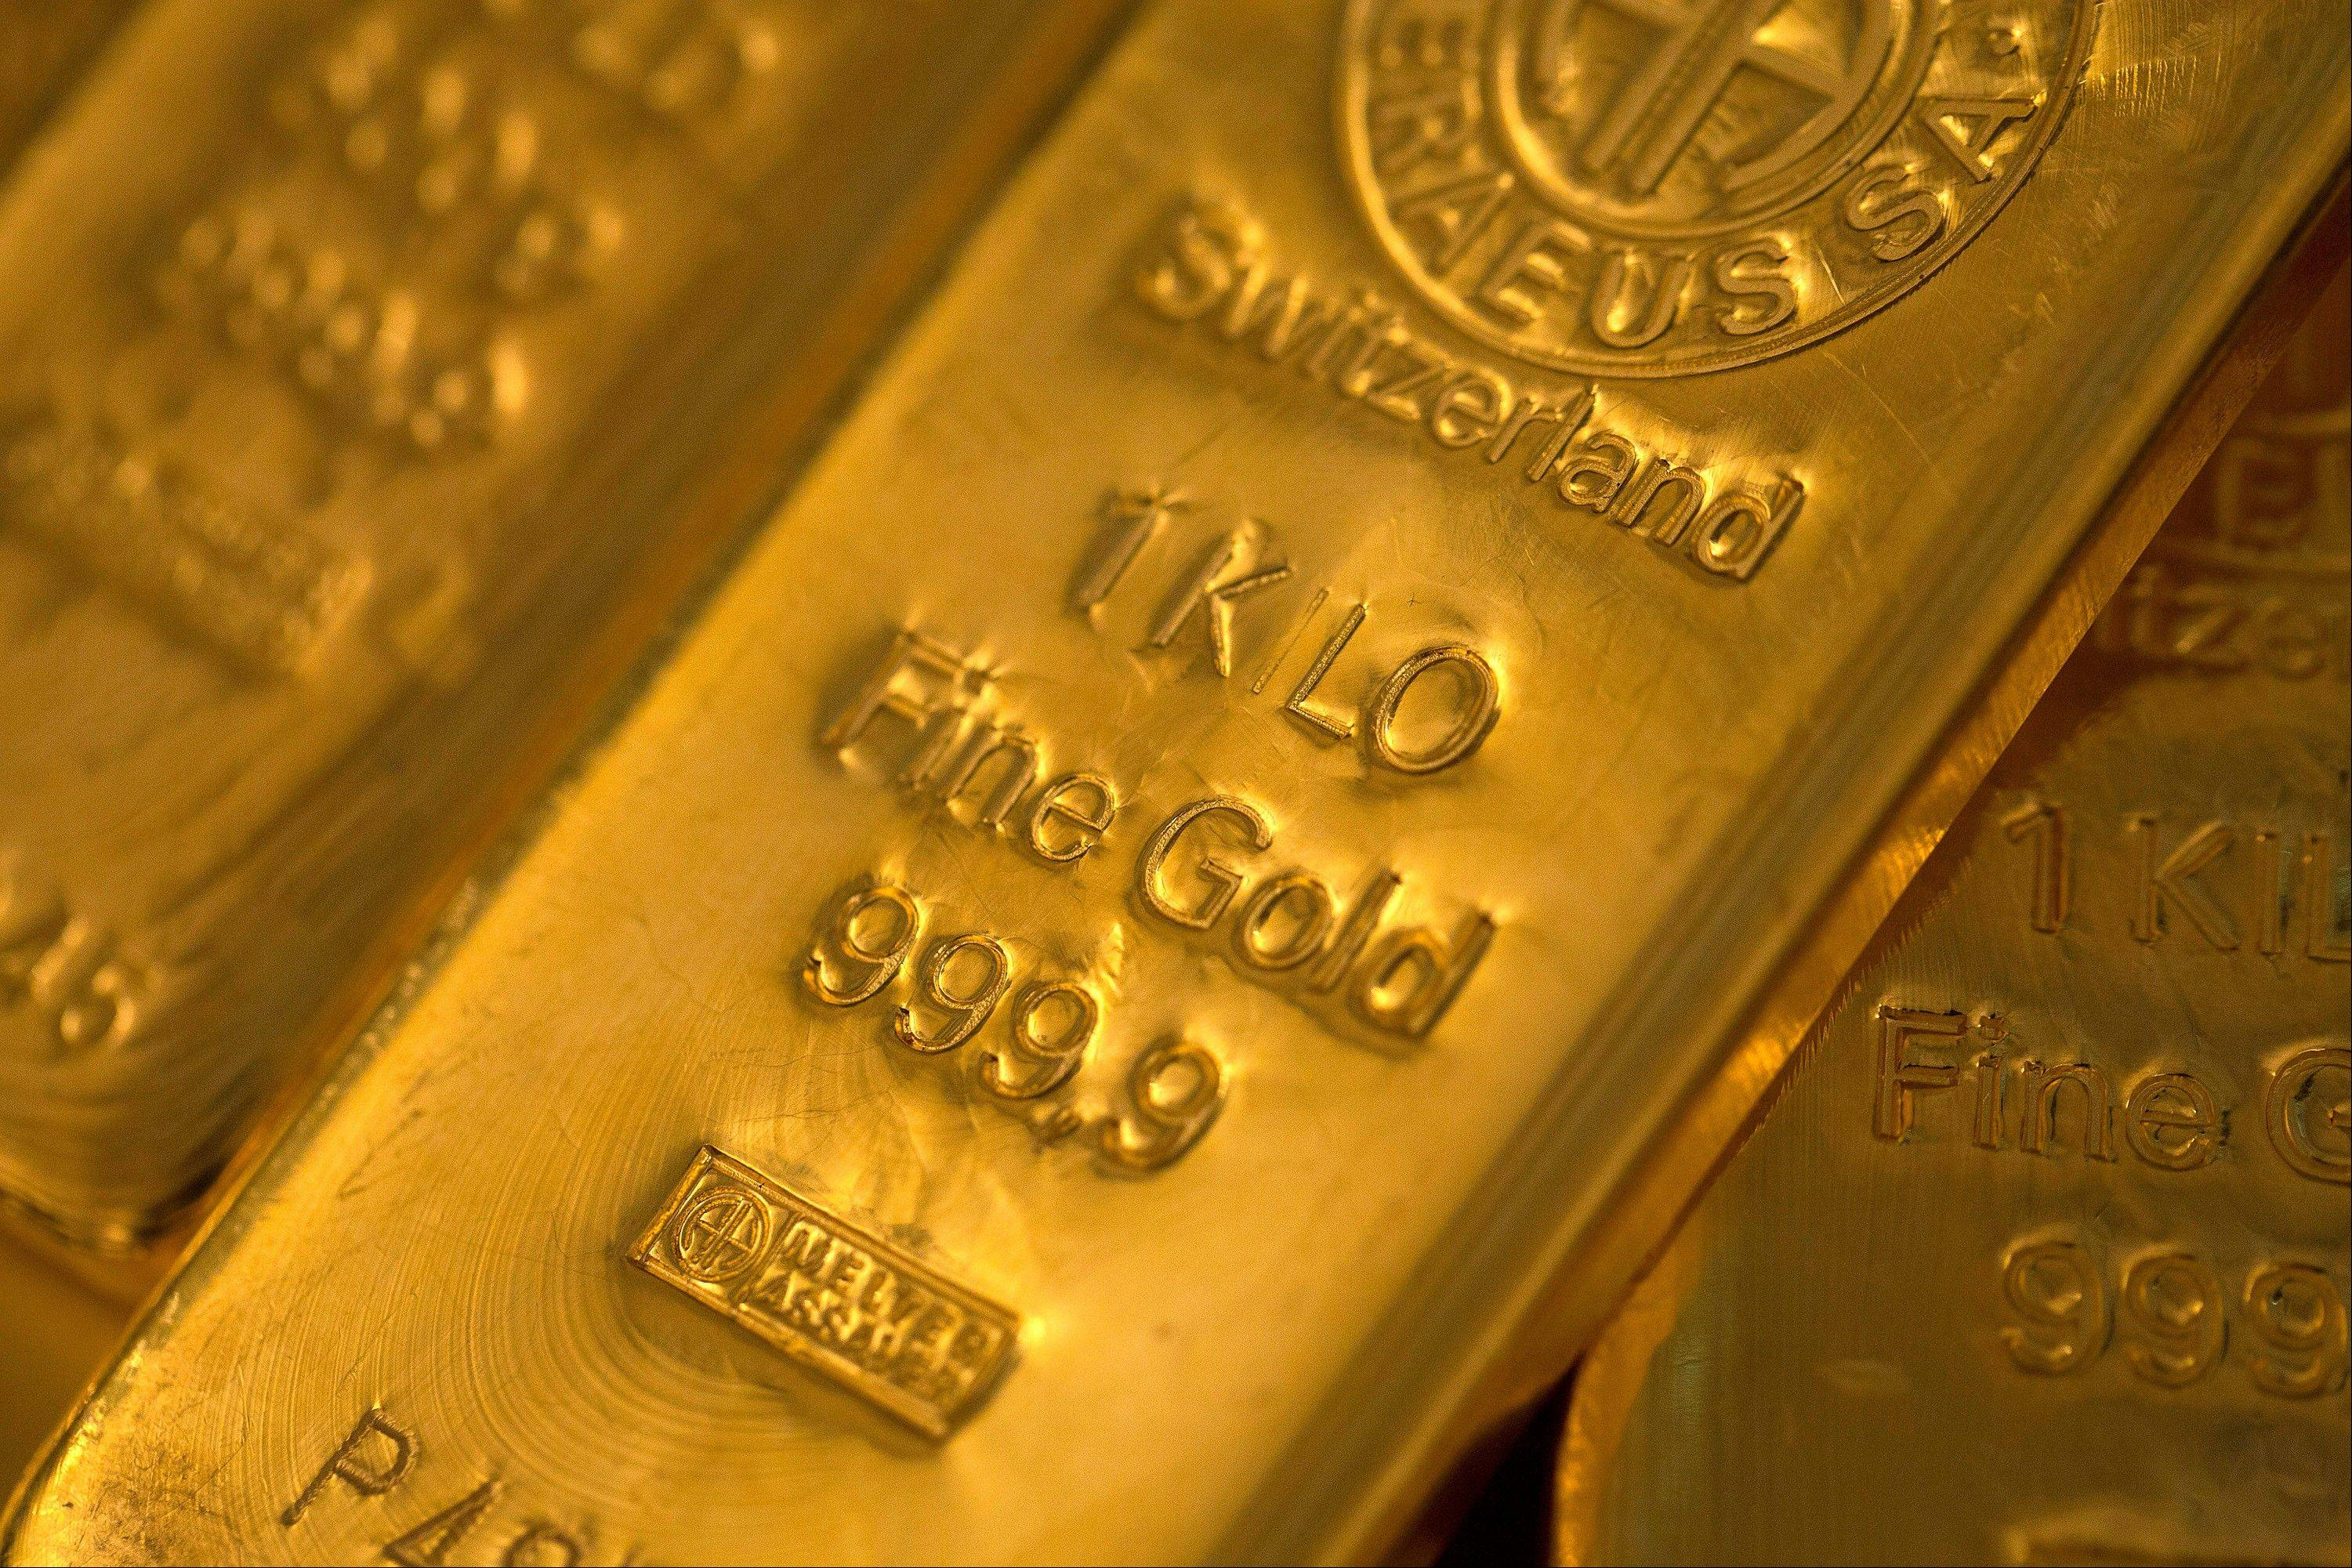 Two one kilogram gold bars sit with a 500 gram gold bar at London bullion dealers Gold Investments Ltd. in this file photograph.